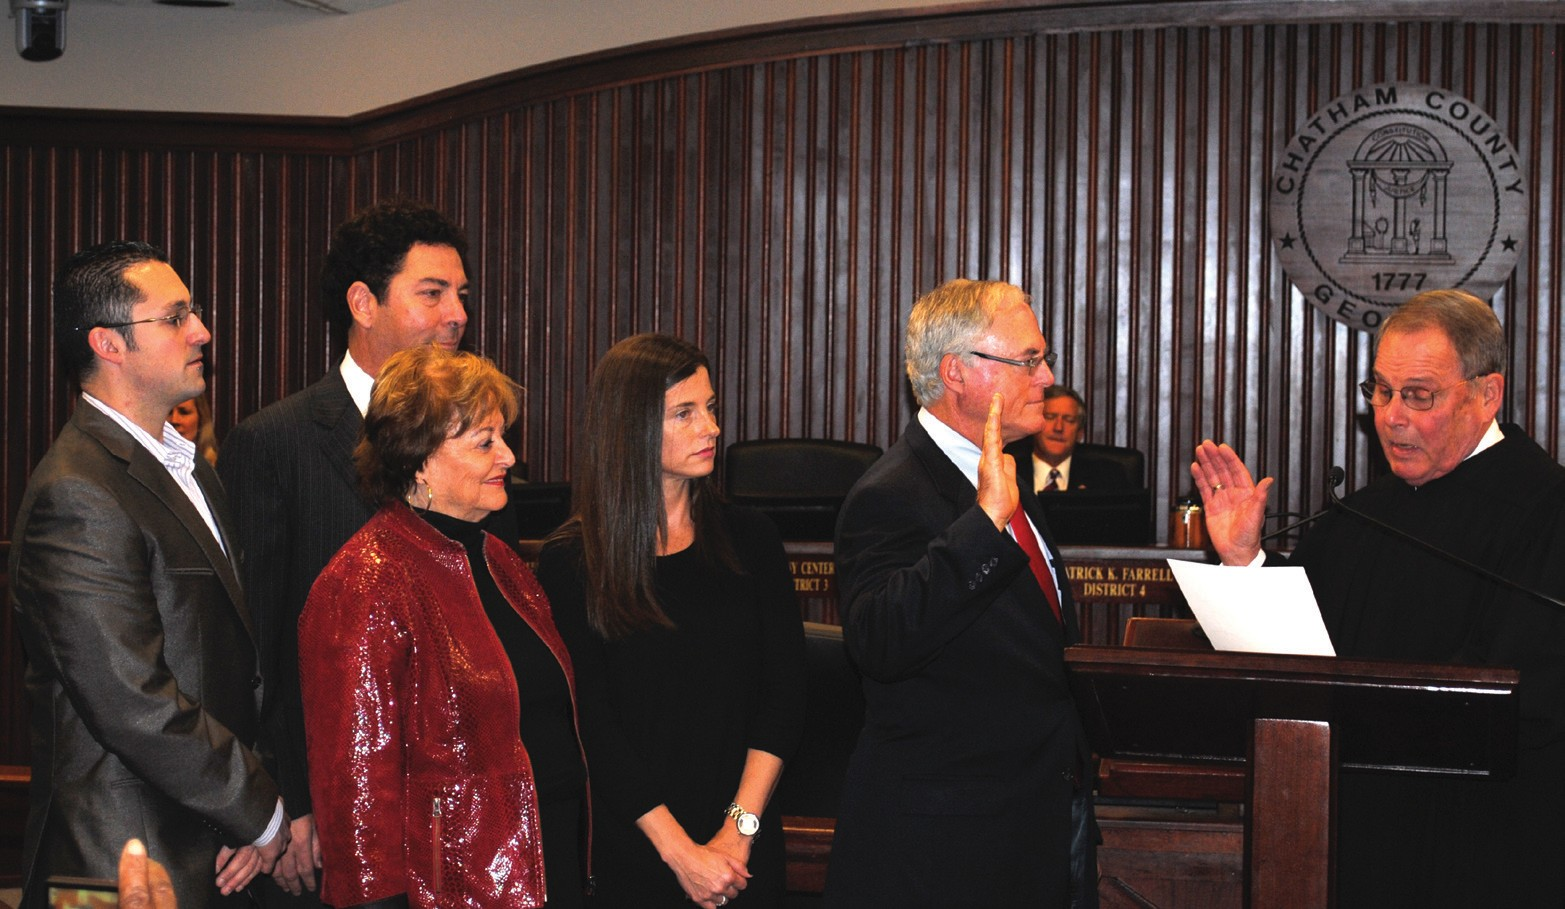 Commissioner Tony Center, District 3, sworn in by The Honorable Judge Timothy R. Walmsley